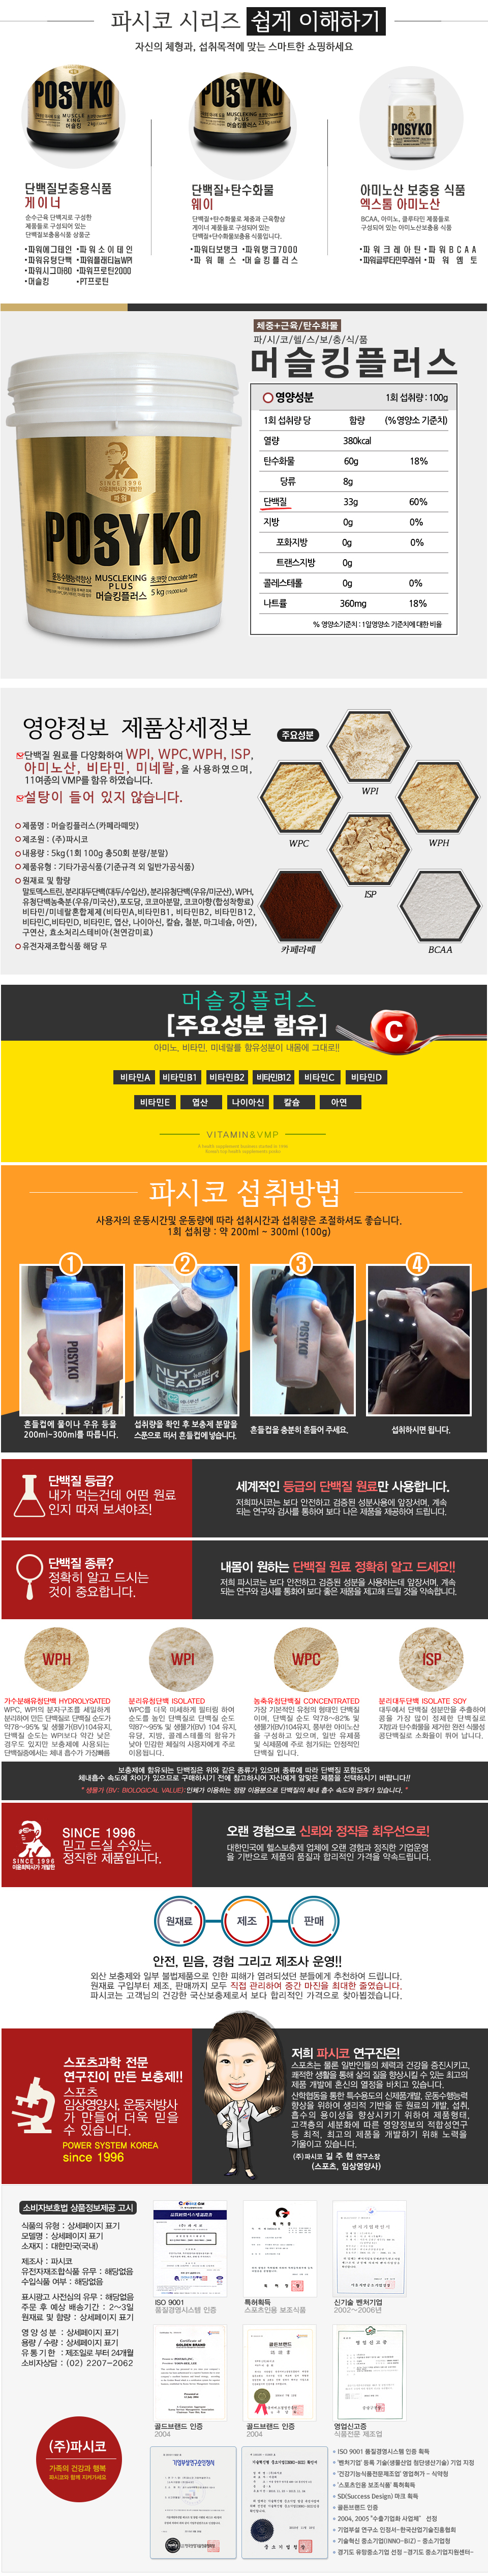 [ etc ] Muscleking Plus Chocolate Flavor 5Kg (Weight Training) Protein Supplement/Health Supplement/Shaker Included